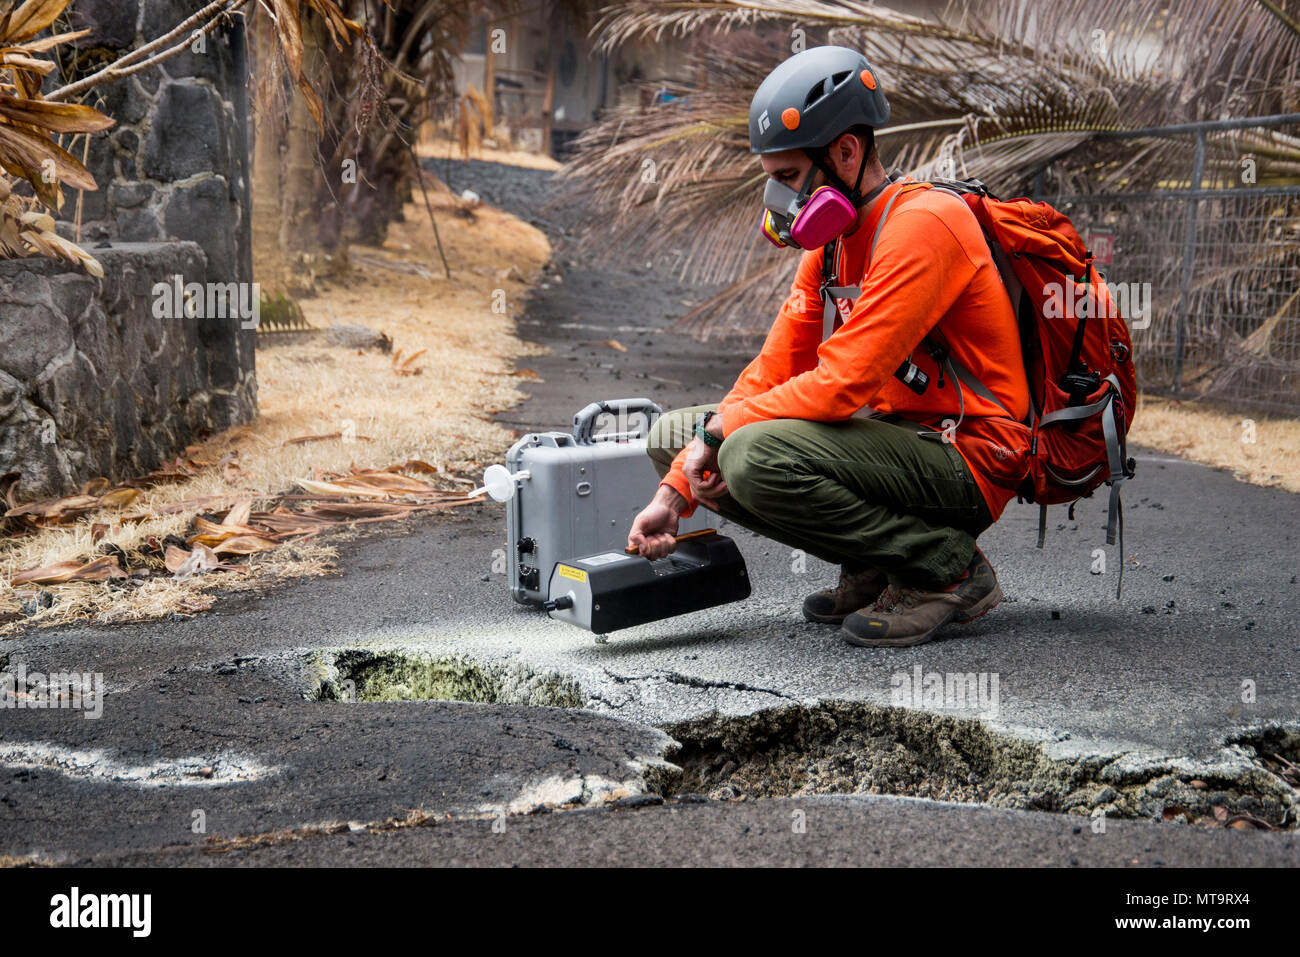 Pāhoa, Hawaii, May 19, 2018 – U.S. Geological Survey (USGS) volunteer Allen Lerner uses a sulfur dioxide (SO2) sensor to test the air quality after the Kīlauea volcanic eruption. The residential area of Leilani Estates has been evacuated due to the high concentration of SO2 emitting from the cracks in the earth that spilled lava into the subdivisions. At the request of the state, FEMA staff are on the ground to support local officials with life-saving emergency protective measures, debris removal, and the repair, replacement, or restoration of disaster-damaged publicly-owned facilities. Photo: - Stock Image